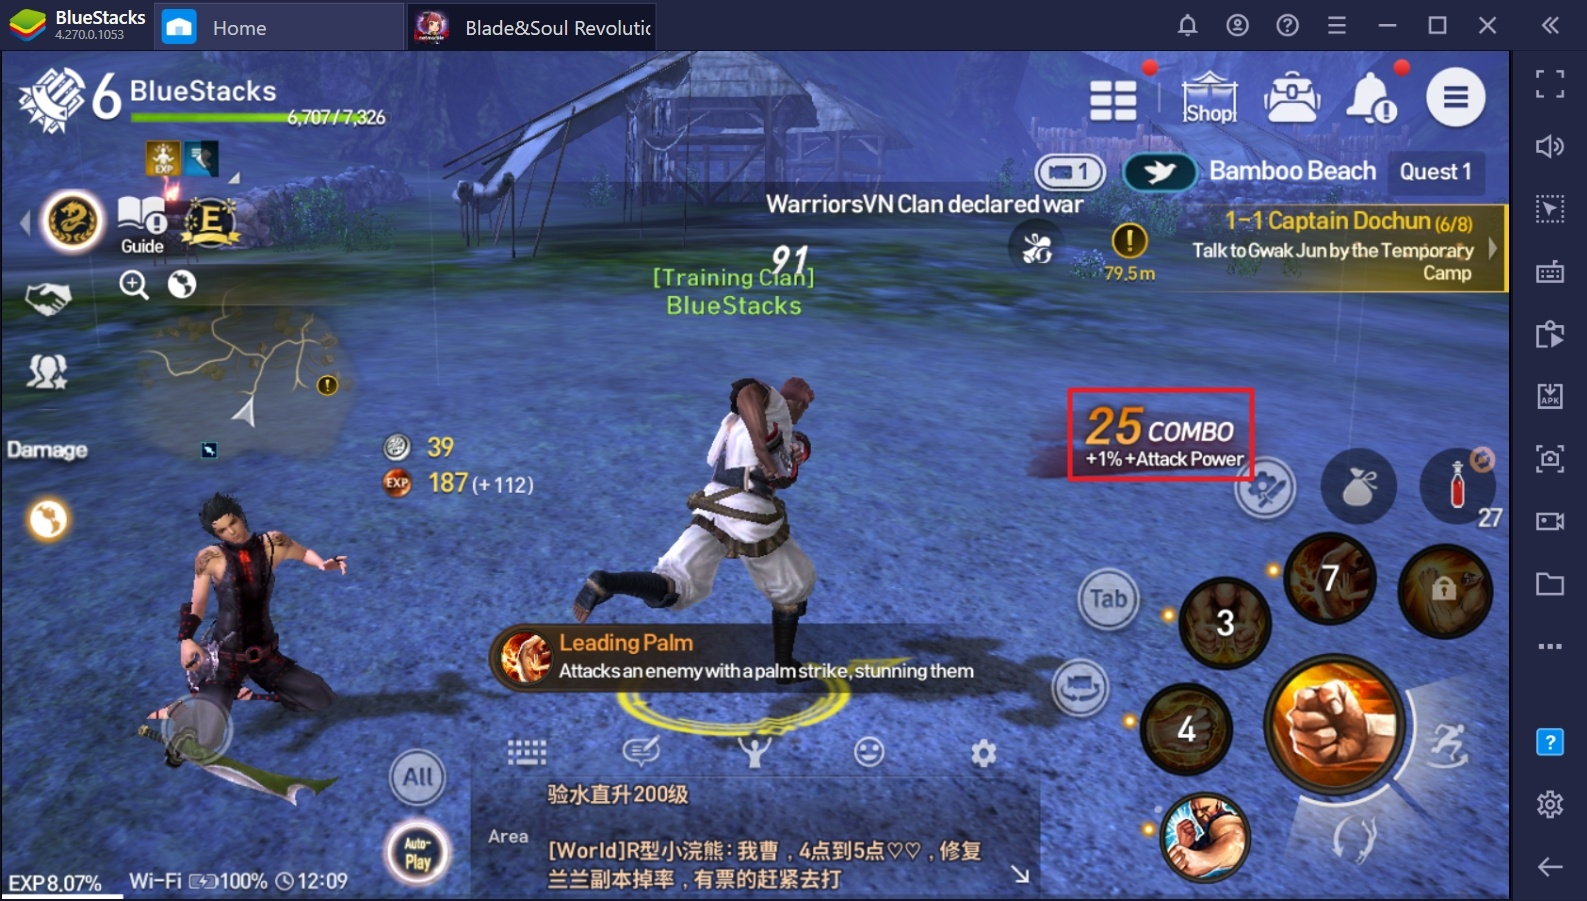 Blade and Soul: Revolution on PC – Beginners Combat Guide